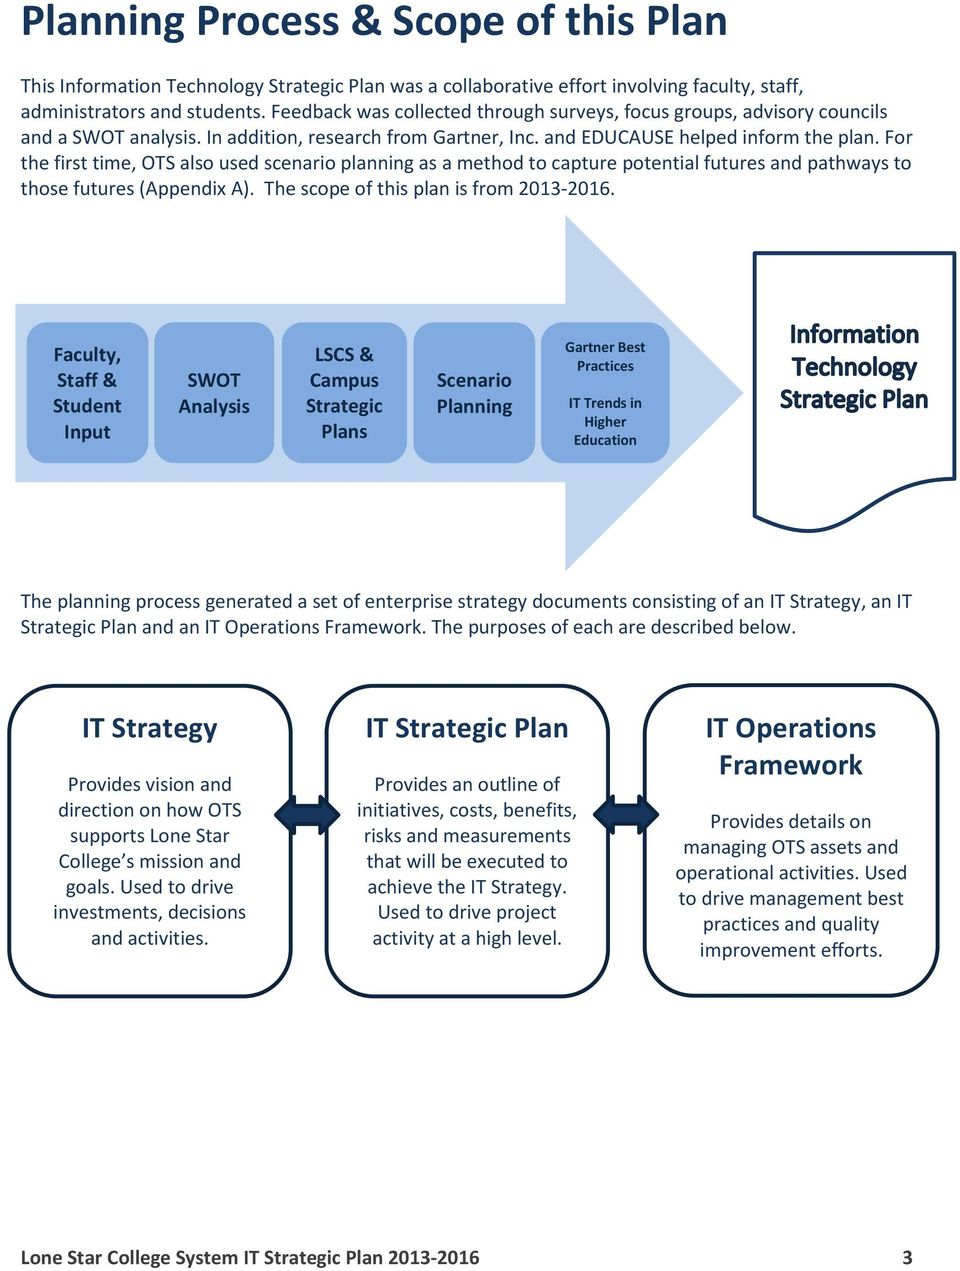 For the first time, OTS also used scenario planning as a method to capture potential futures and pathways to those futures (Appendix A). The scope of this plan is from 2013-2016.